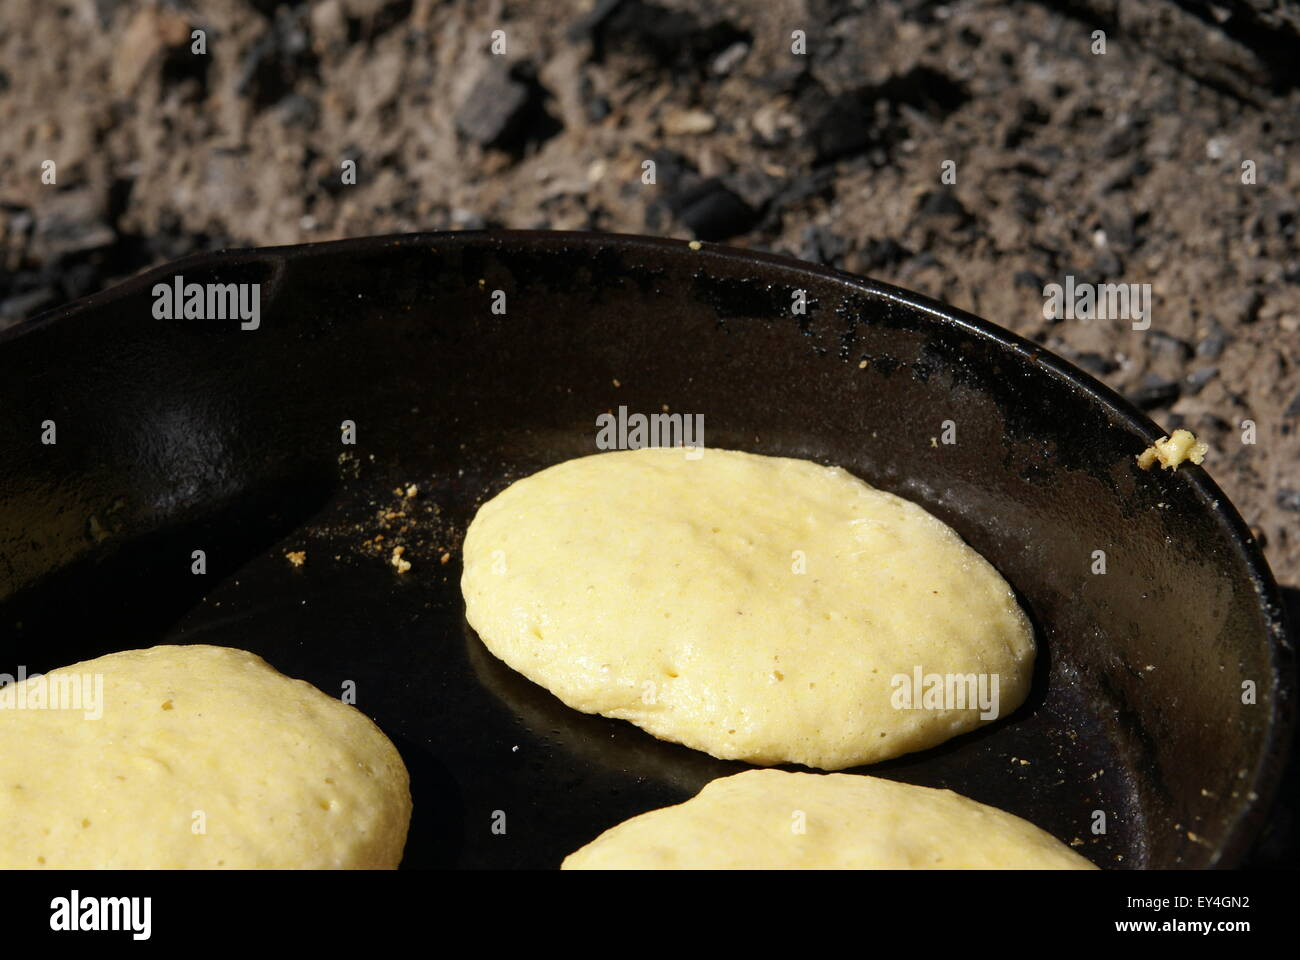 Cornmeal batter being cooked into pancakes in an iron skillet over an open fire - Stock Image